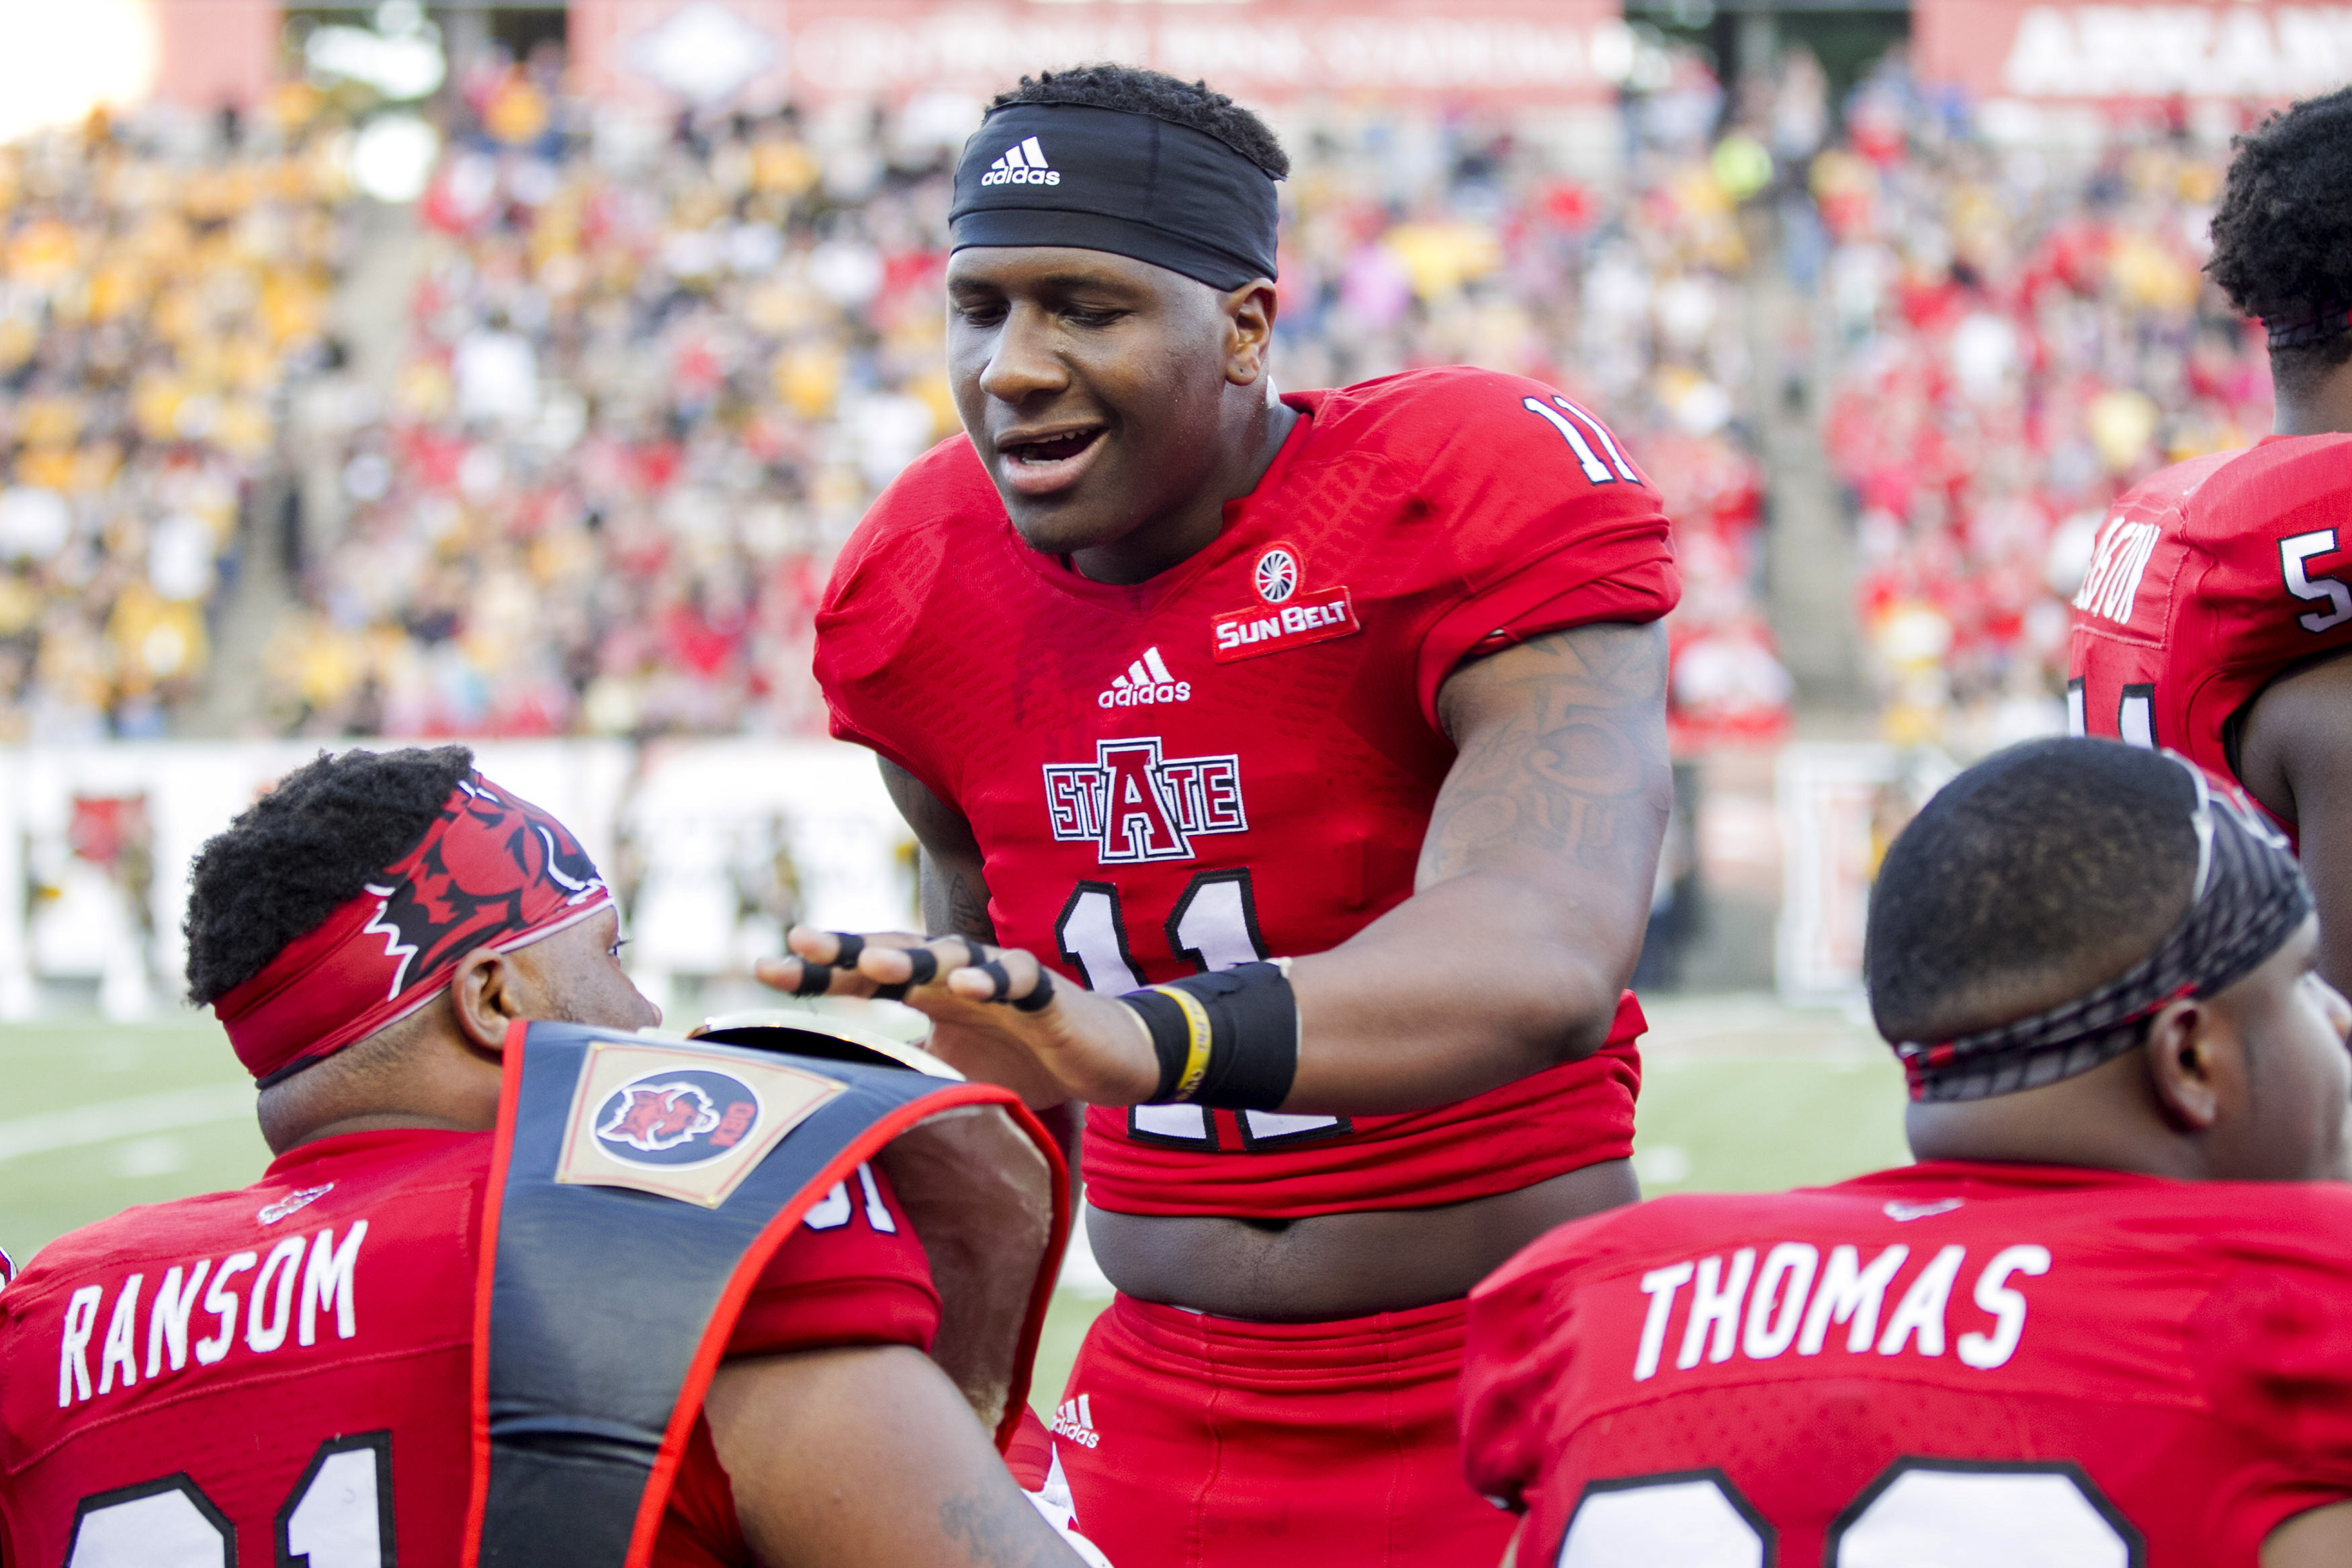 Arkansas State defensive end Ja'Von Rolland-Jones (11) hands off a wresting belt to defensive lineman Donovan Ransom (91) after an interception during an NCAA college football game Saturday, Sept. 12, 2015, in Jonesboro, Ark. (AP Photo/Gareth Patterson)